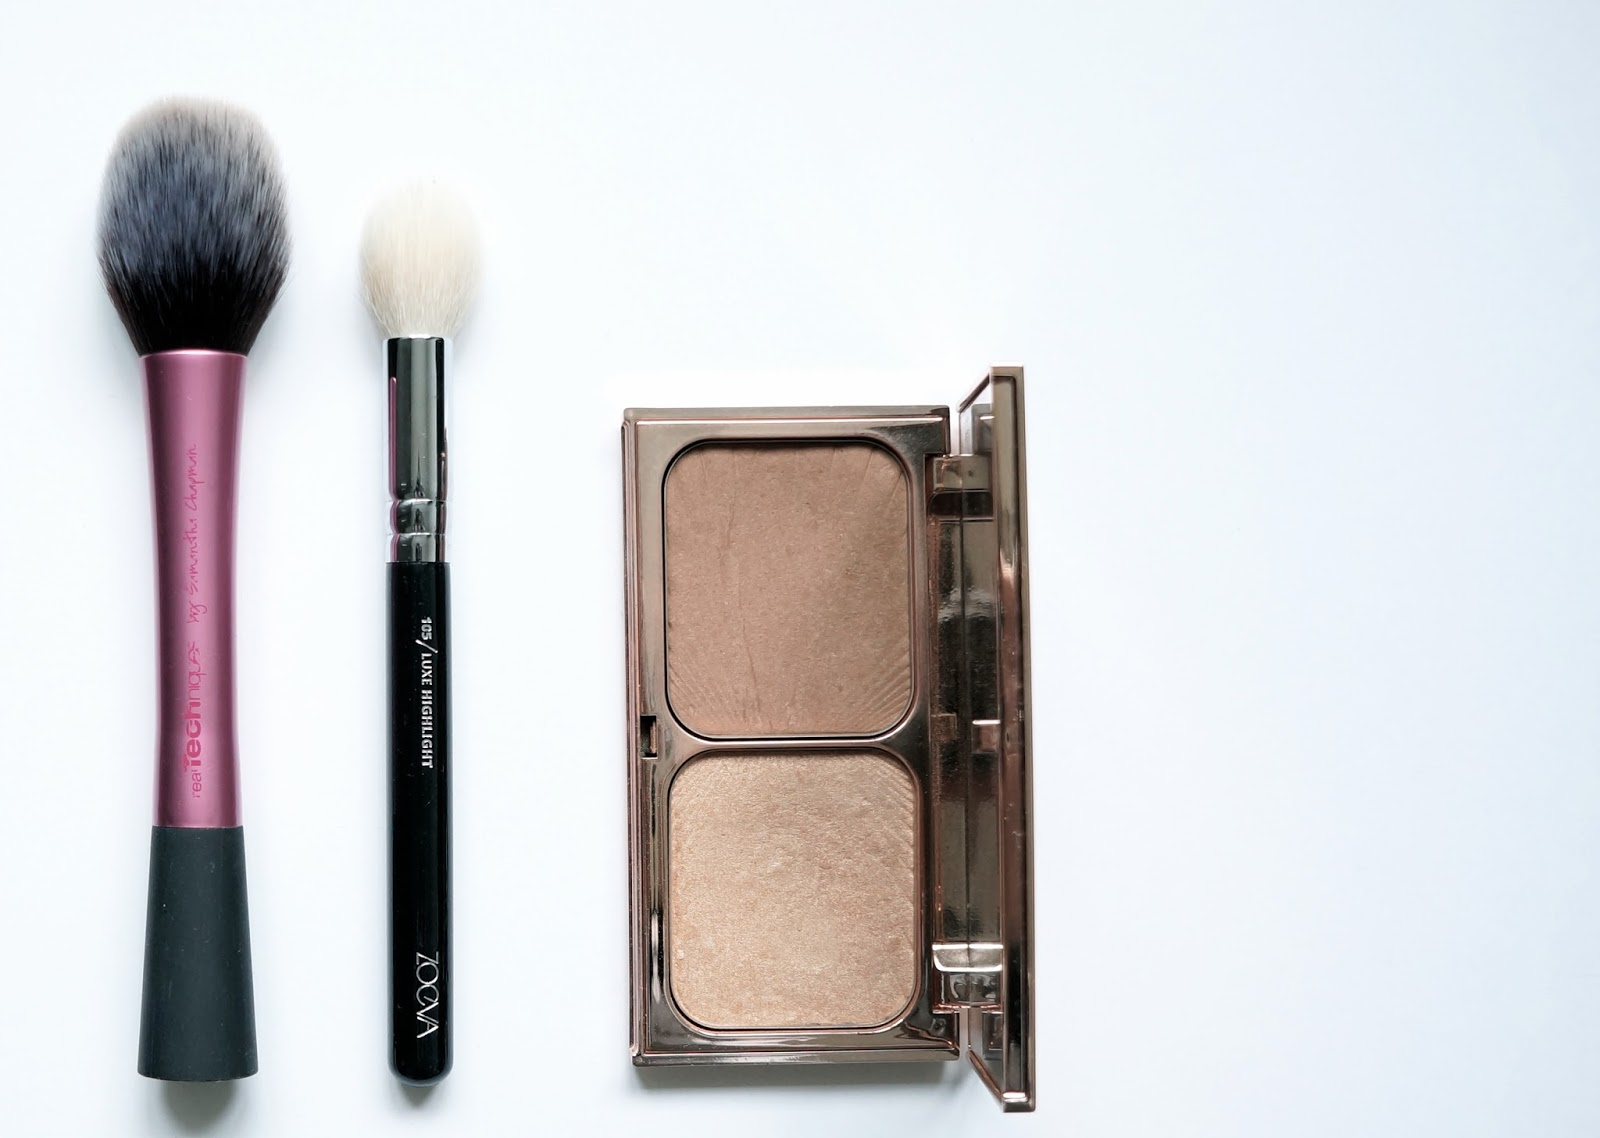 Mes Pinceaux maquillages Makeup Brushes Real Techniques Blush brush Zoeva Luxe Highlighter brush Charlotte Tilbury Filmstar Bronze & Glow palette Lexie Blush